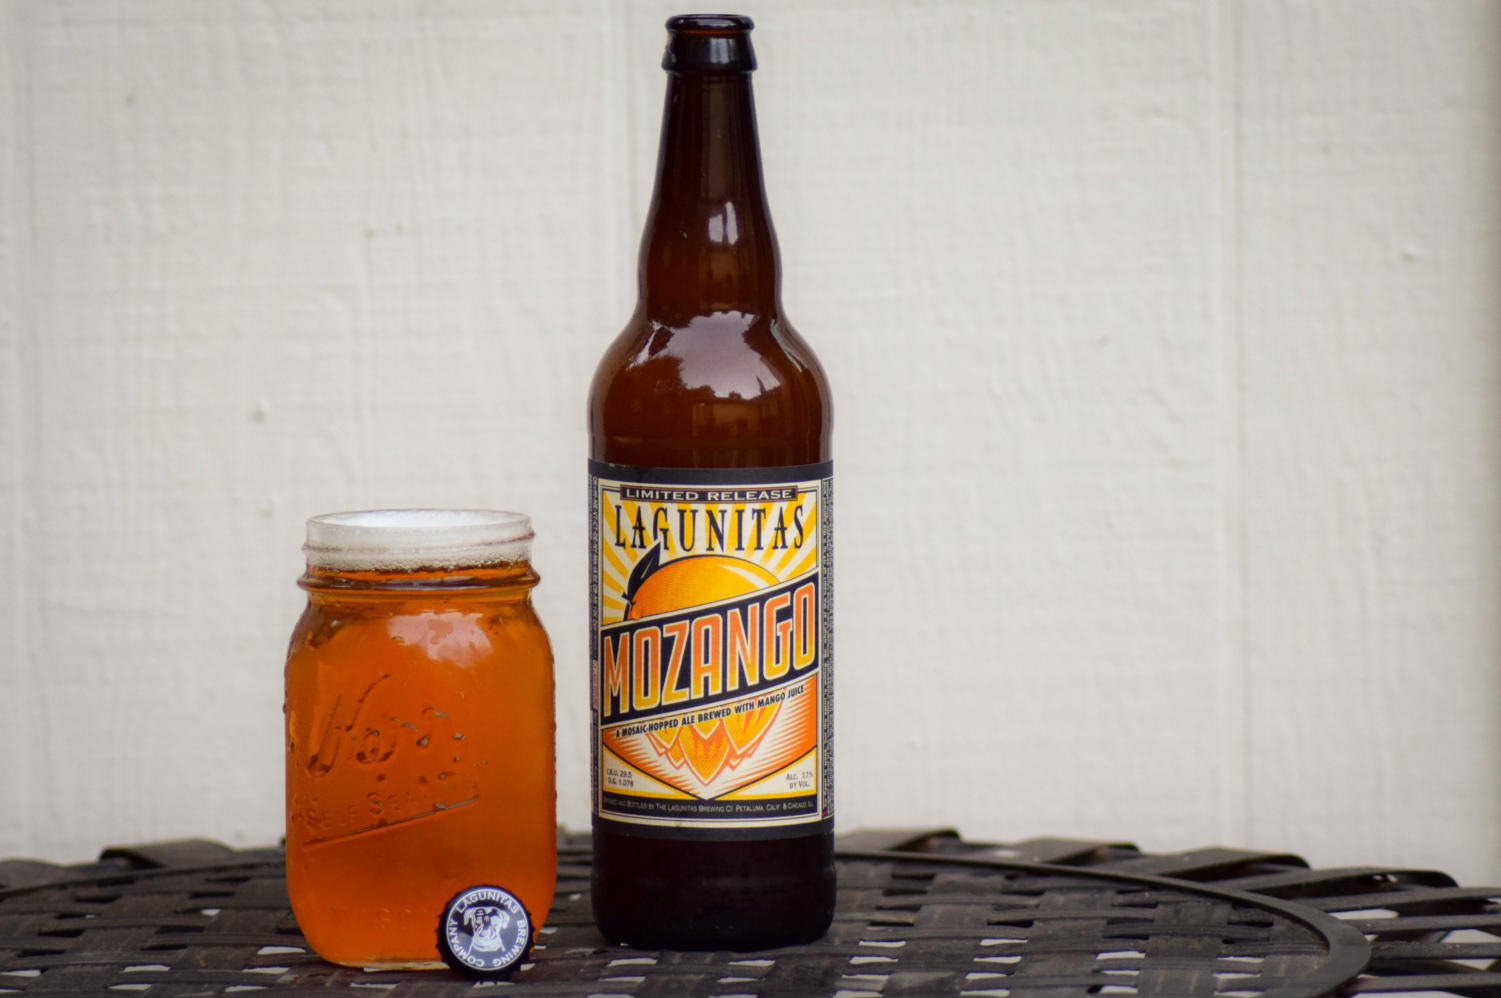 Mozango pairs well with desserts and heavy comfort food.